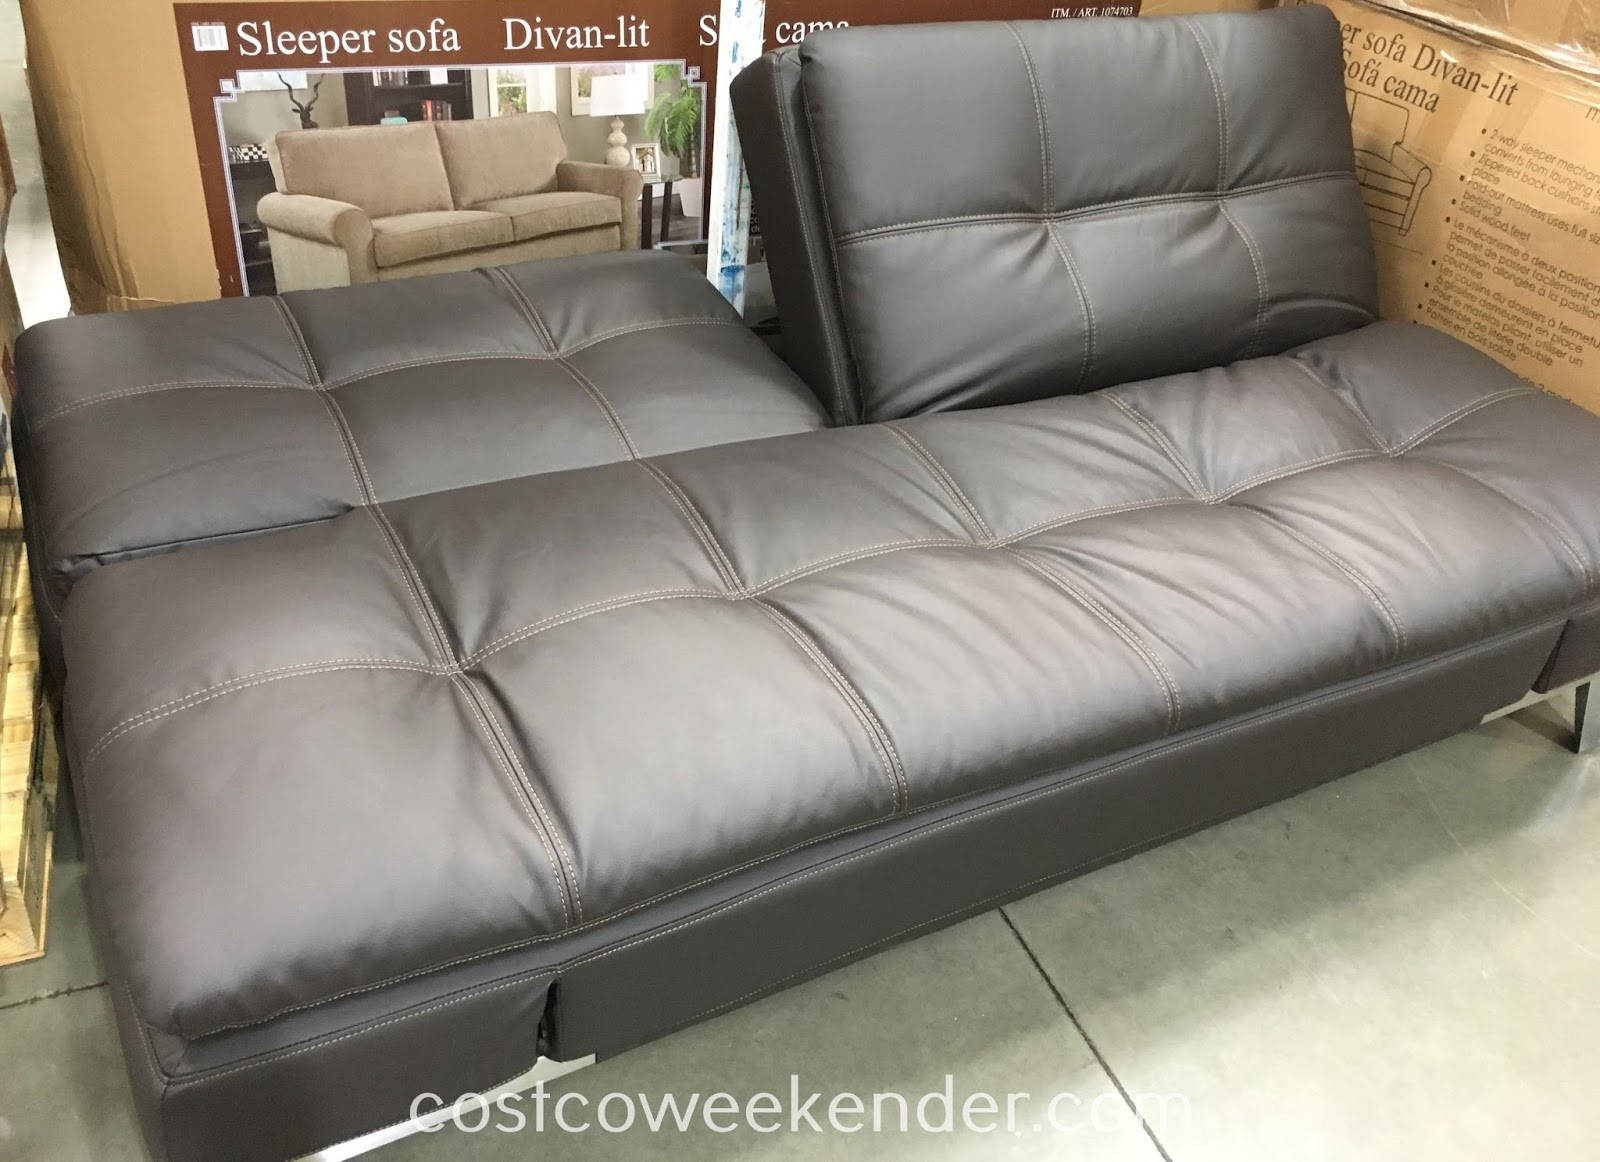 sofa costco ca leather sectional recliners lifestyle solutions euro lounger   weekender